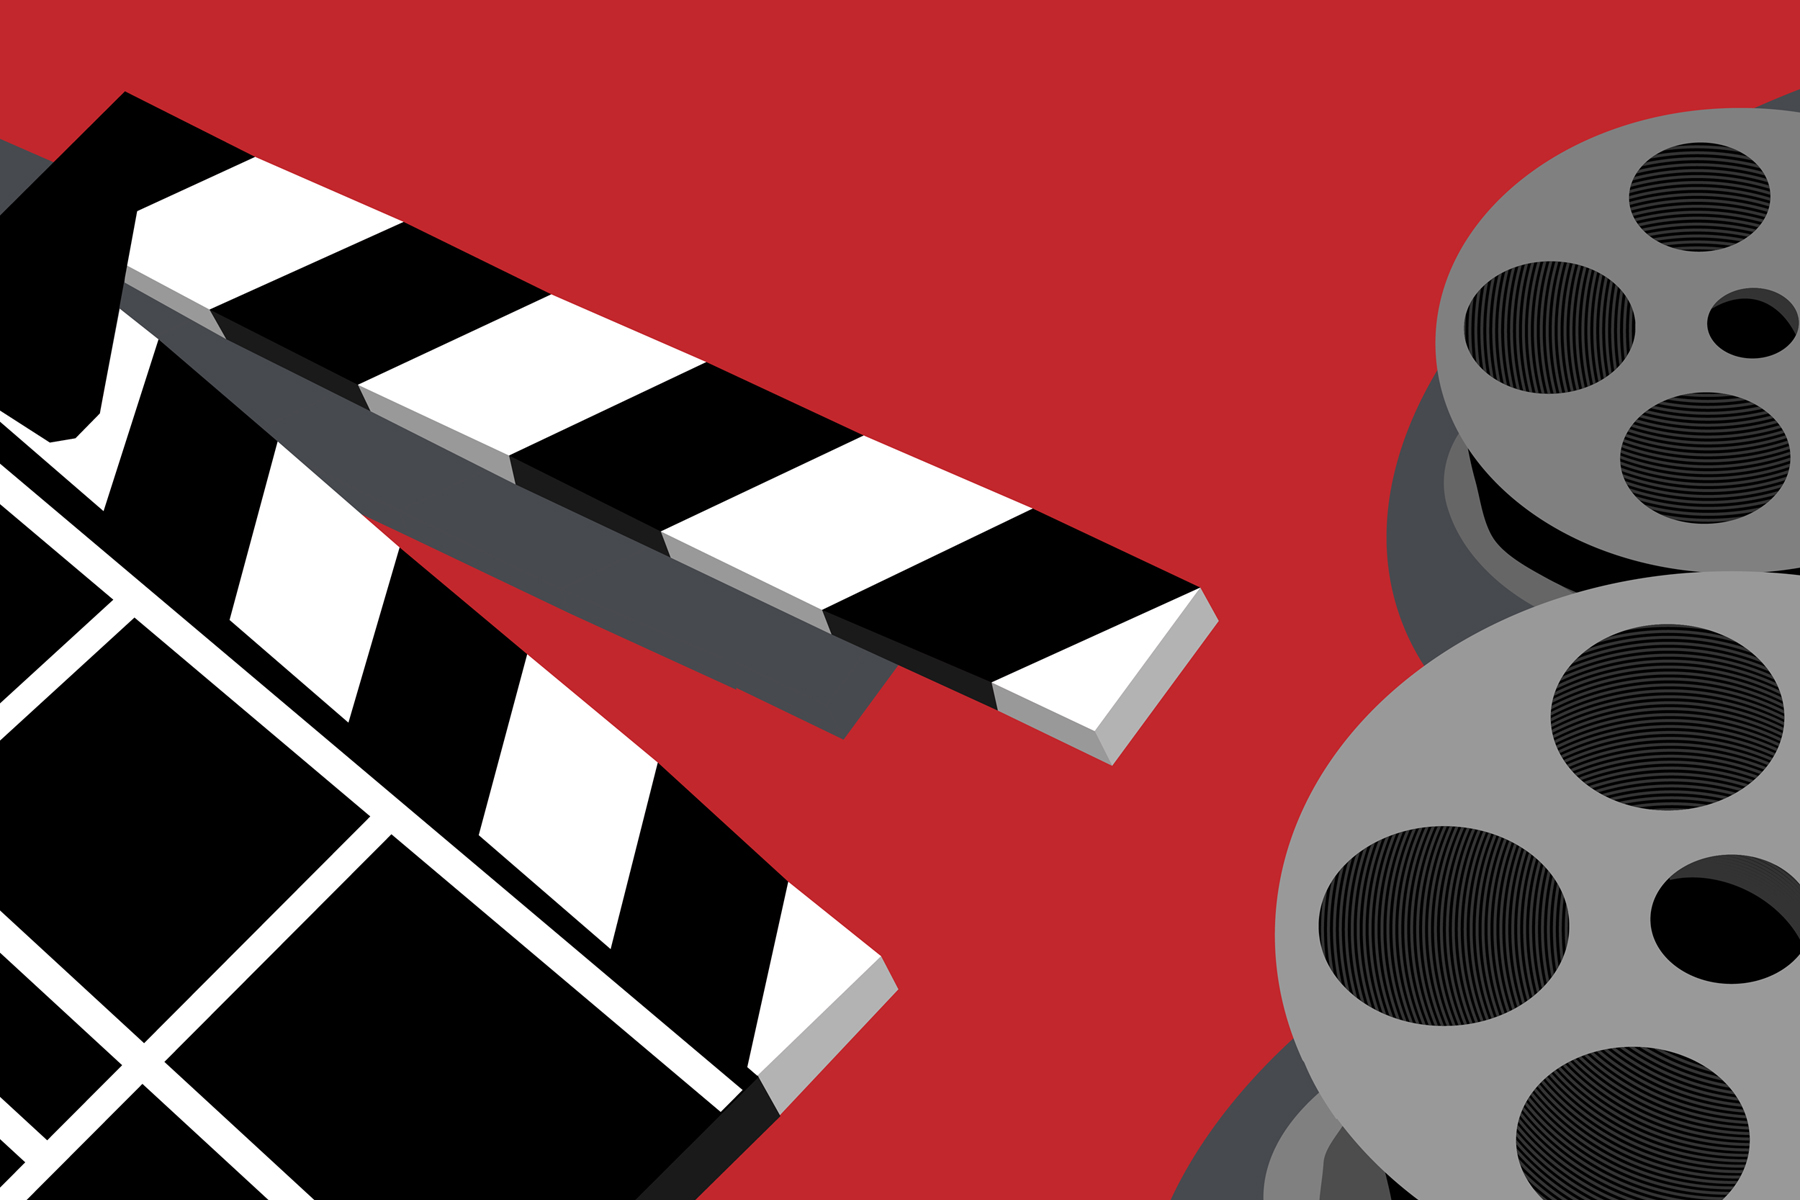 In an article about the We Are One film festival, an illustration by Diana Egan of two film reels and a slate board